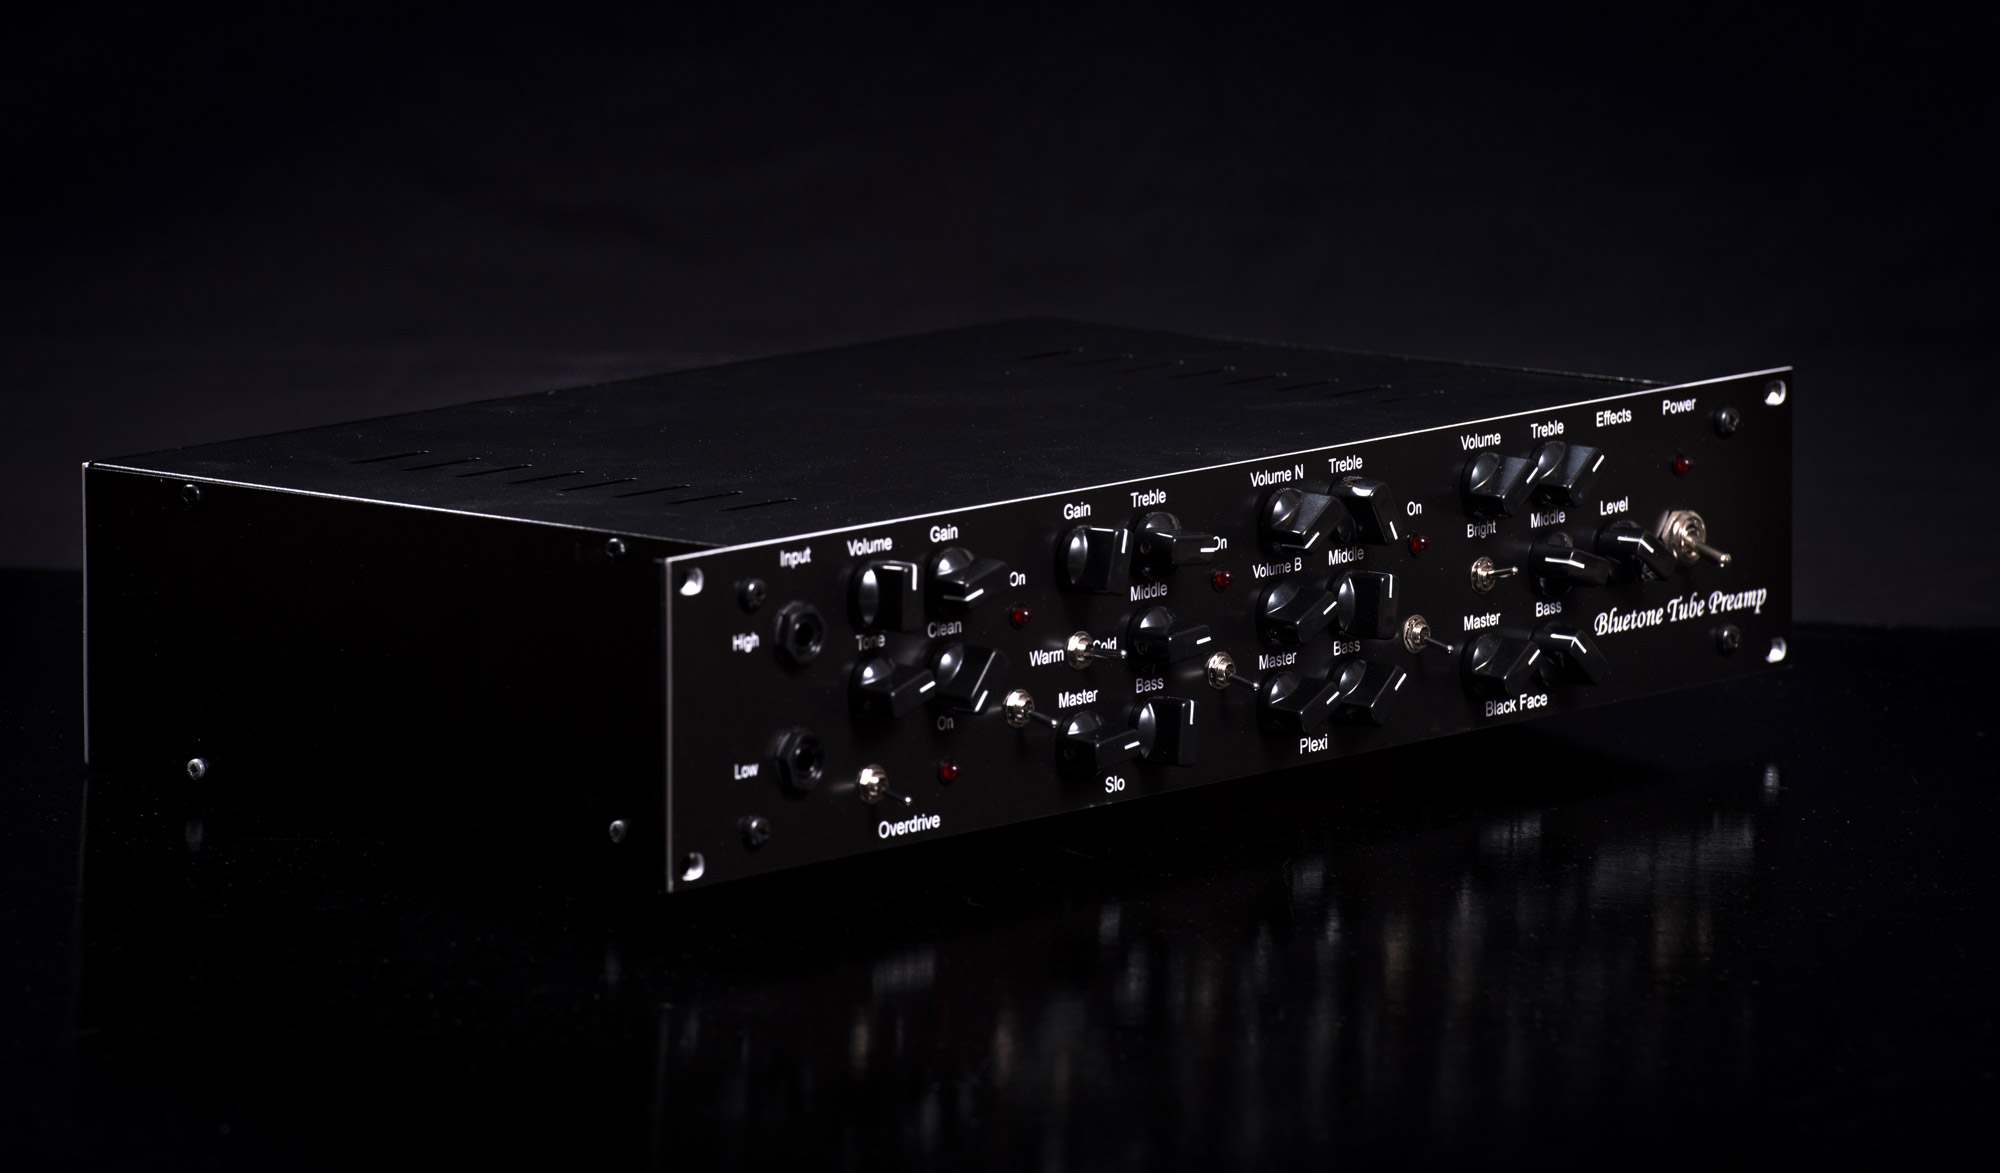 Rack Tube Preamp Bluetone Custom Amplifiers Band 2 Preamplifier